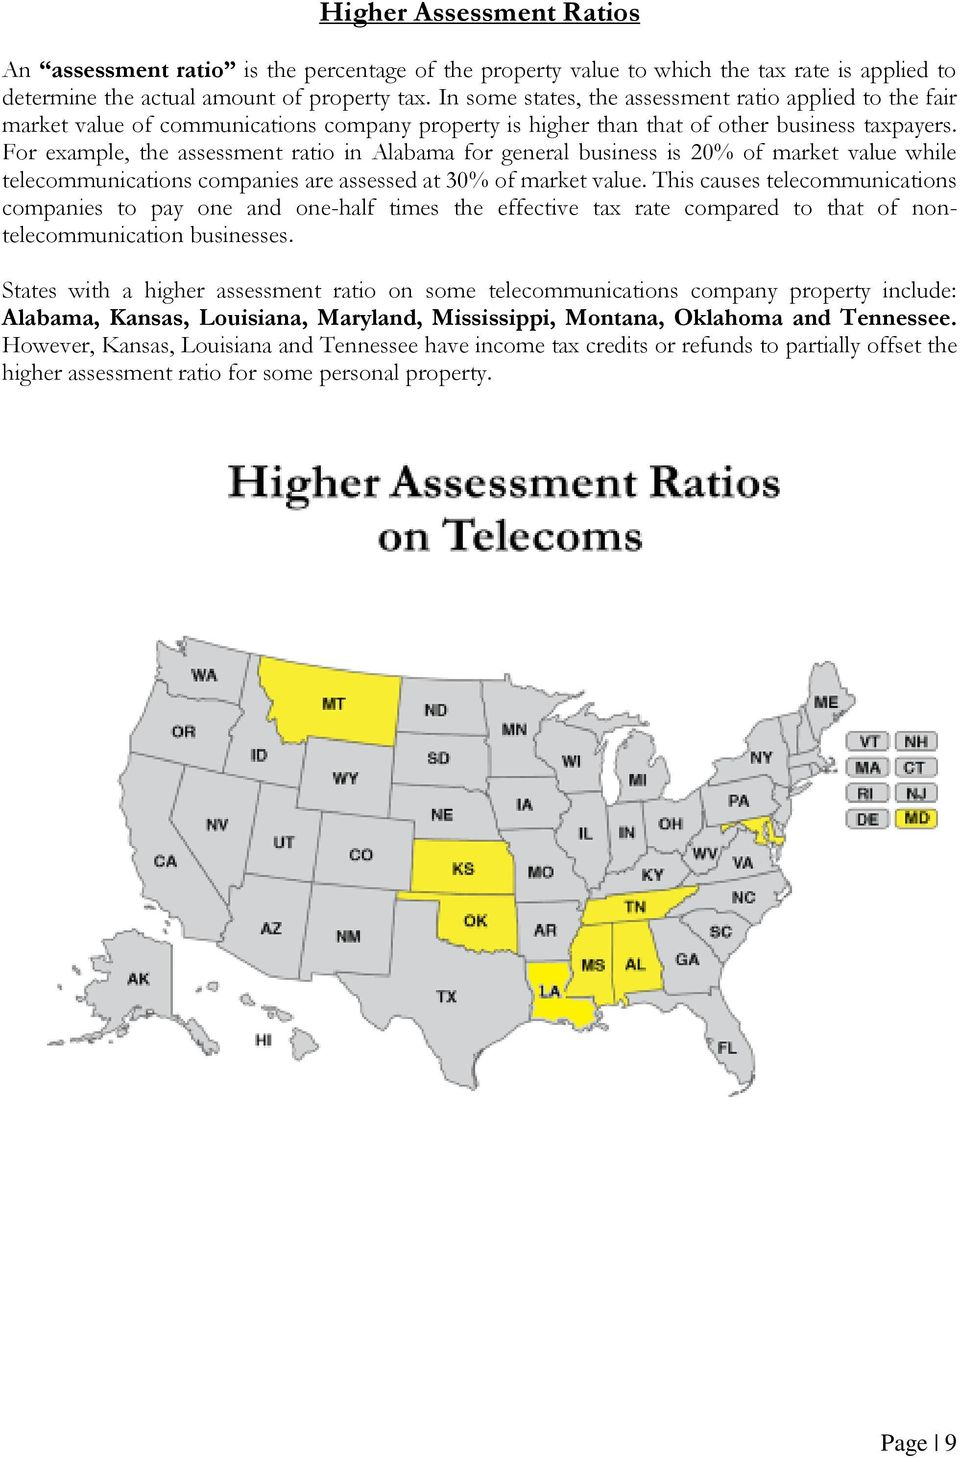 For example, the assessment ratio in Alabama for general business is 20% of market value while telecommunications companies are assessed at 30% of market value.